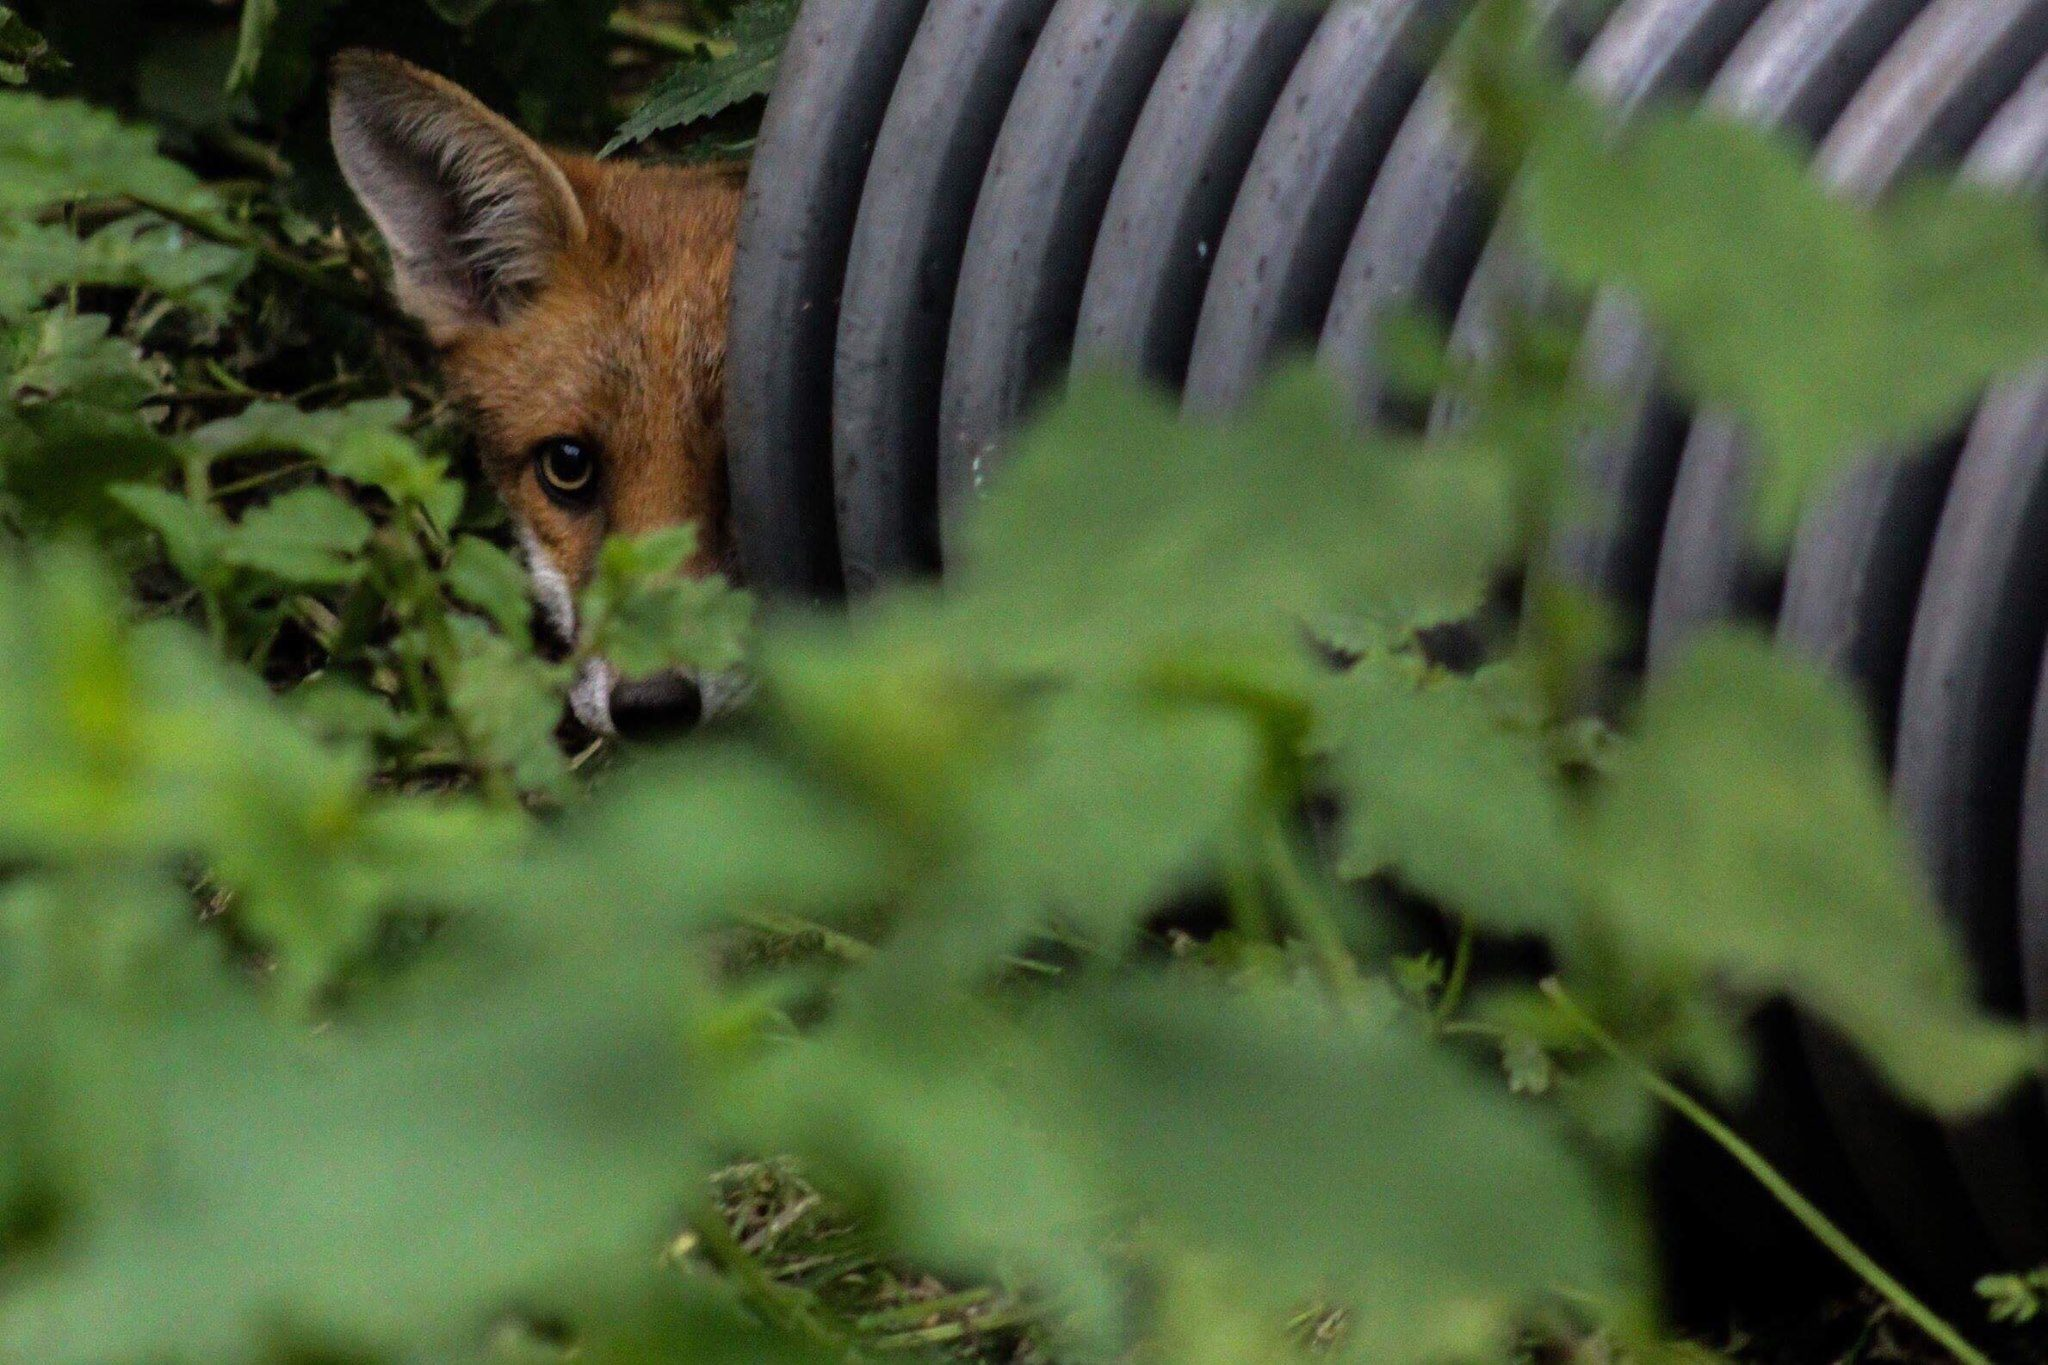 The dead animal will simply be replaced by another coming in to take over the territory. Foxes have an average life expectancy of 2 years.